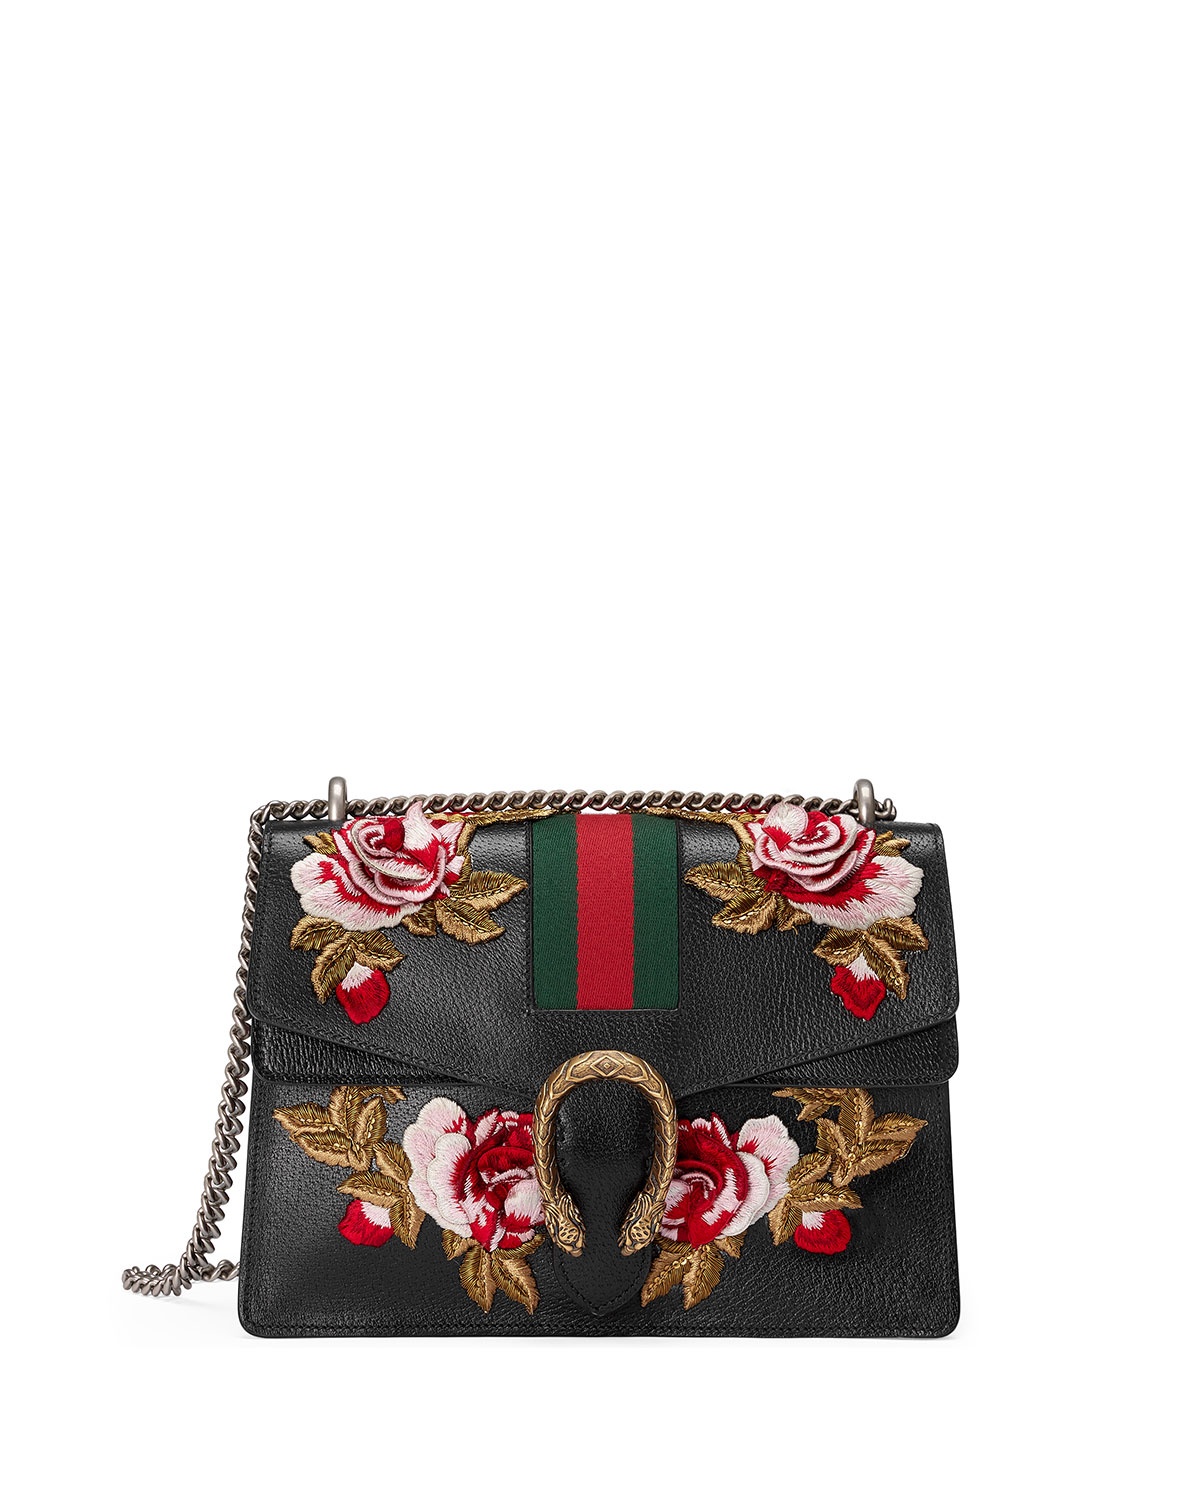 988fa253206d Gucci Dionysus Embroidered Leather Shoulder Bag, Black | Neiman Marcus